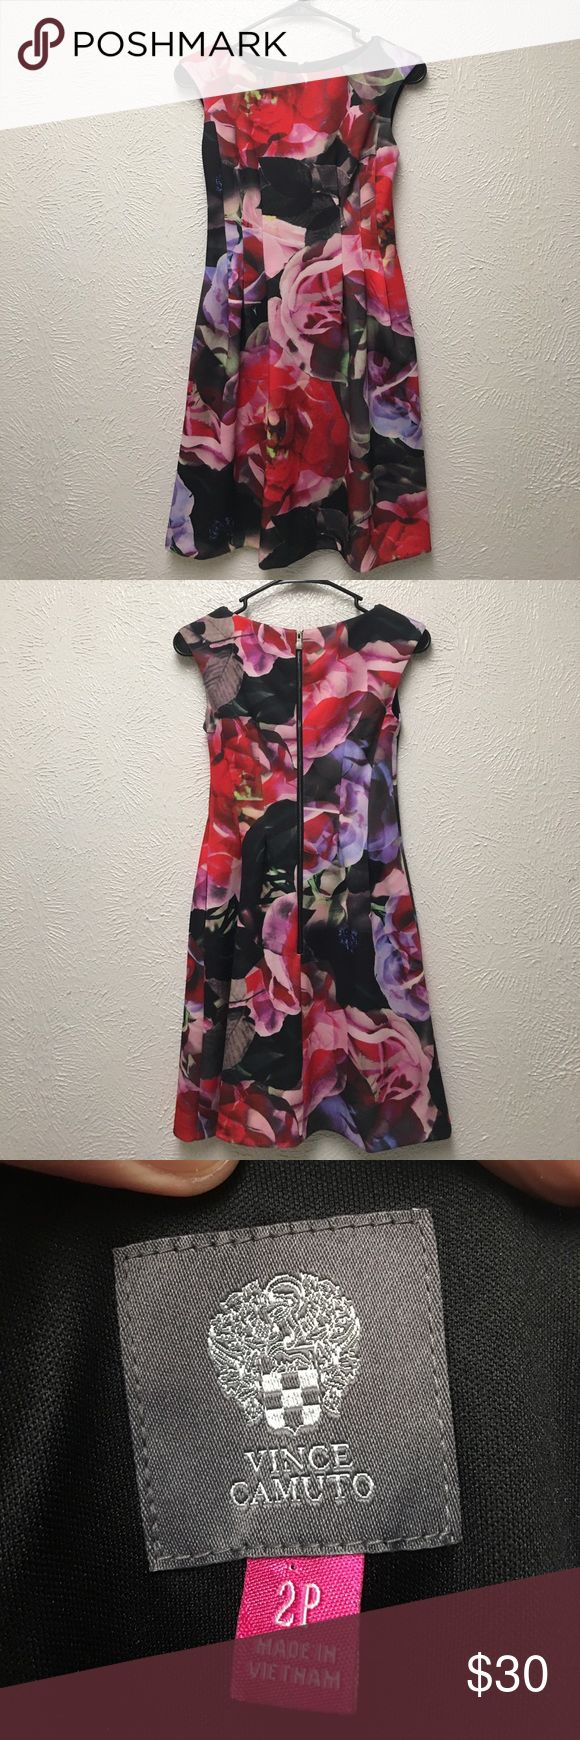 Vince Camuto   Dress Lovely Vince Camuto sleeveless dress in size 2 Petite. Zip back, lined, and has some pleating at hips. Pretty floral design, great colors of red, pink, black, and green and even some blues and purples! Perfect for dinner or a night out! Excellent condition and looks brand new. Vince Camuto Dresses